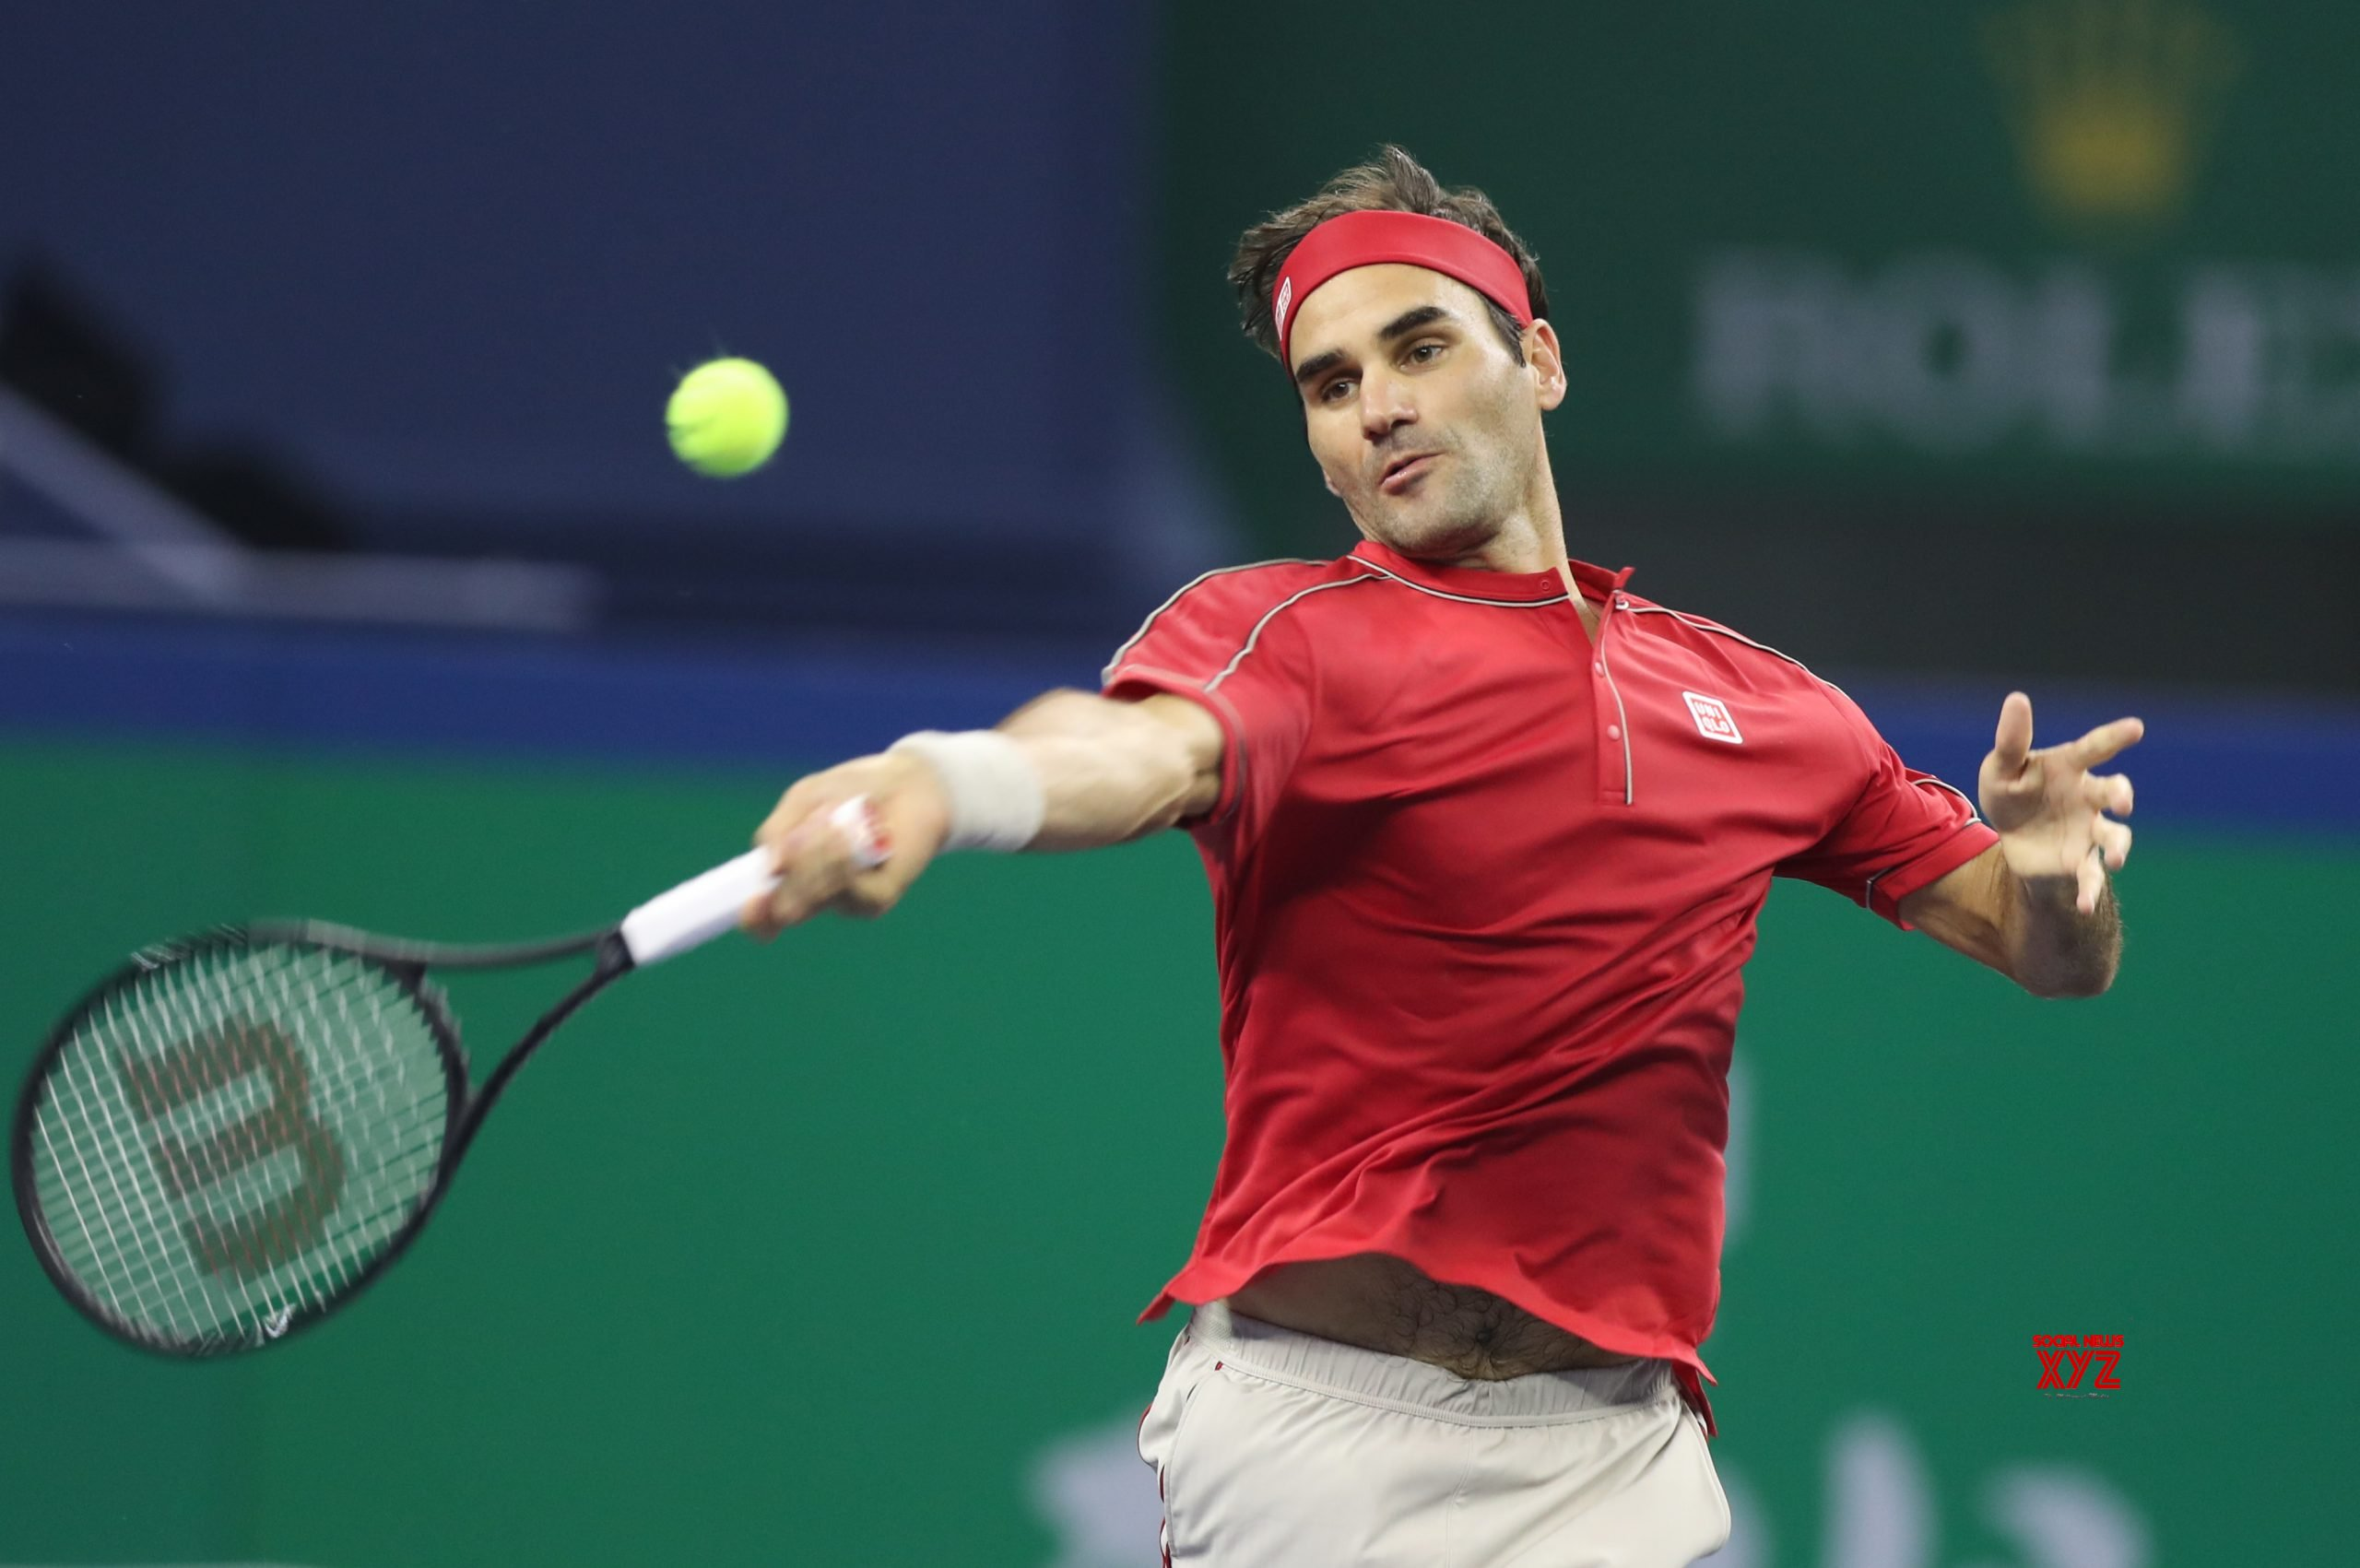 Commemorative coin minted in Switzerland for Federer